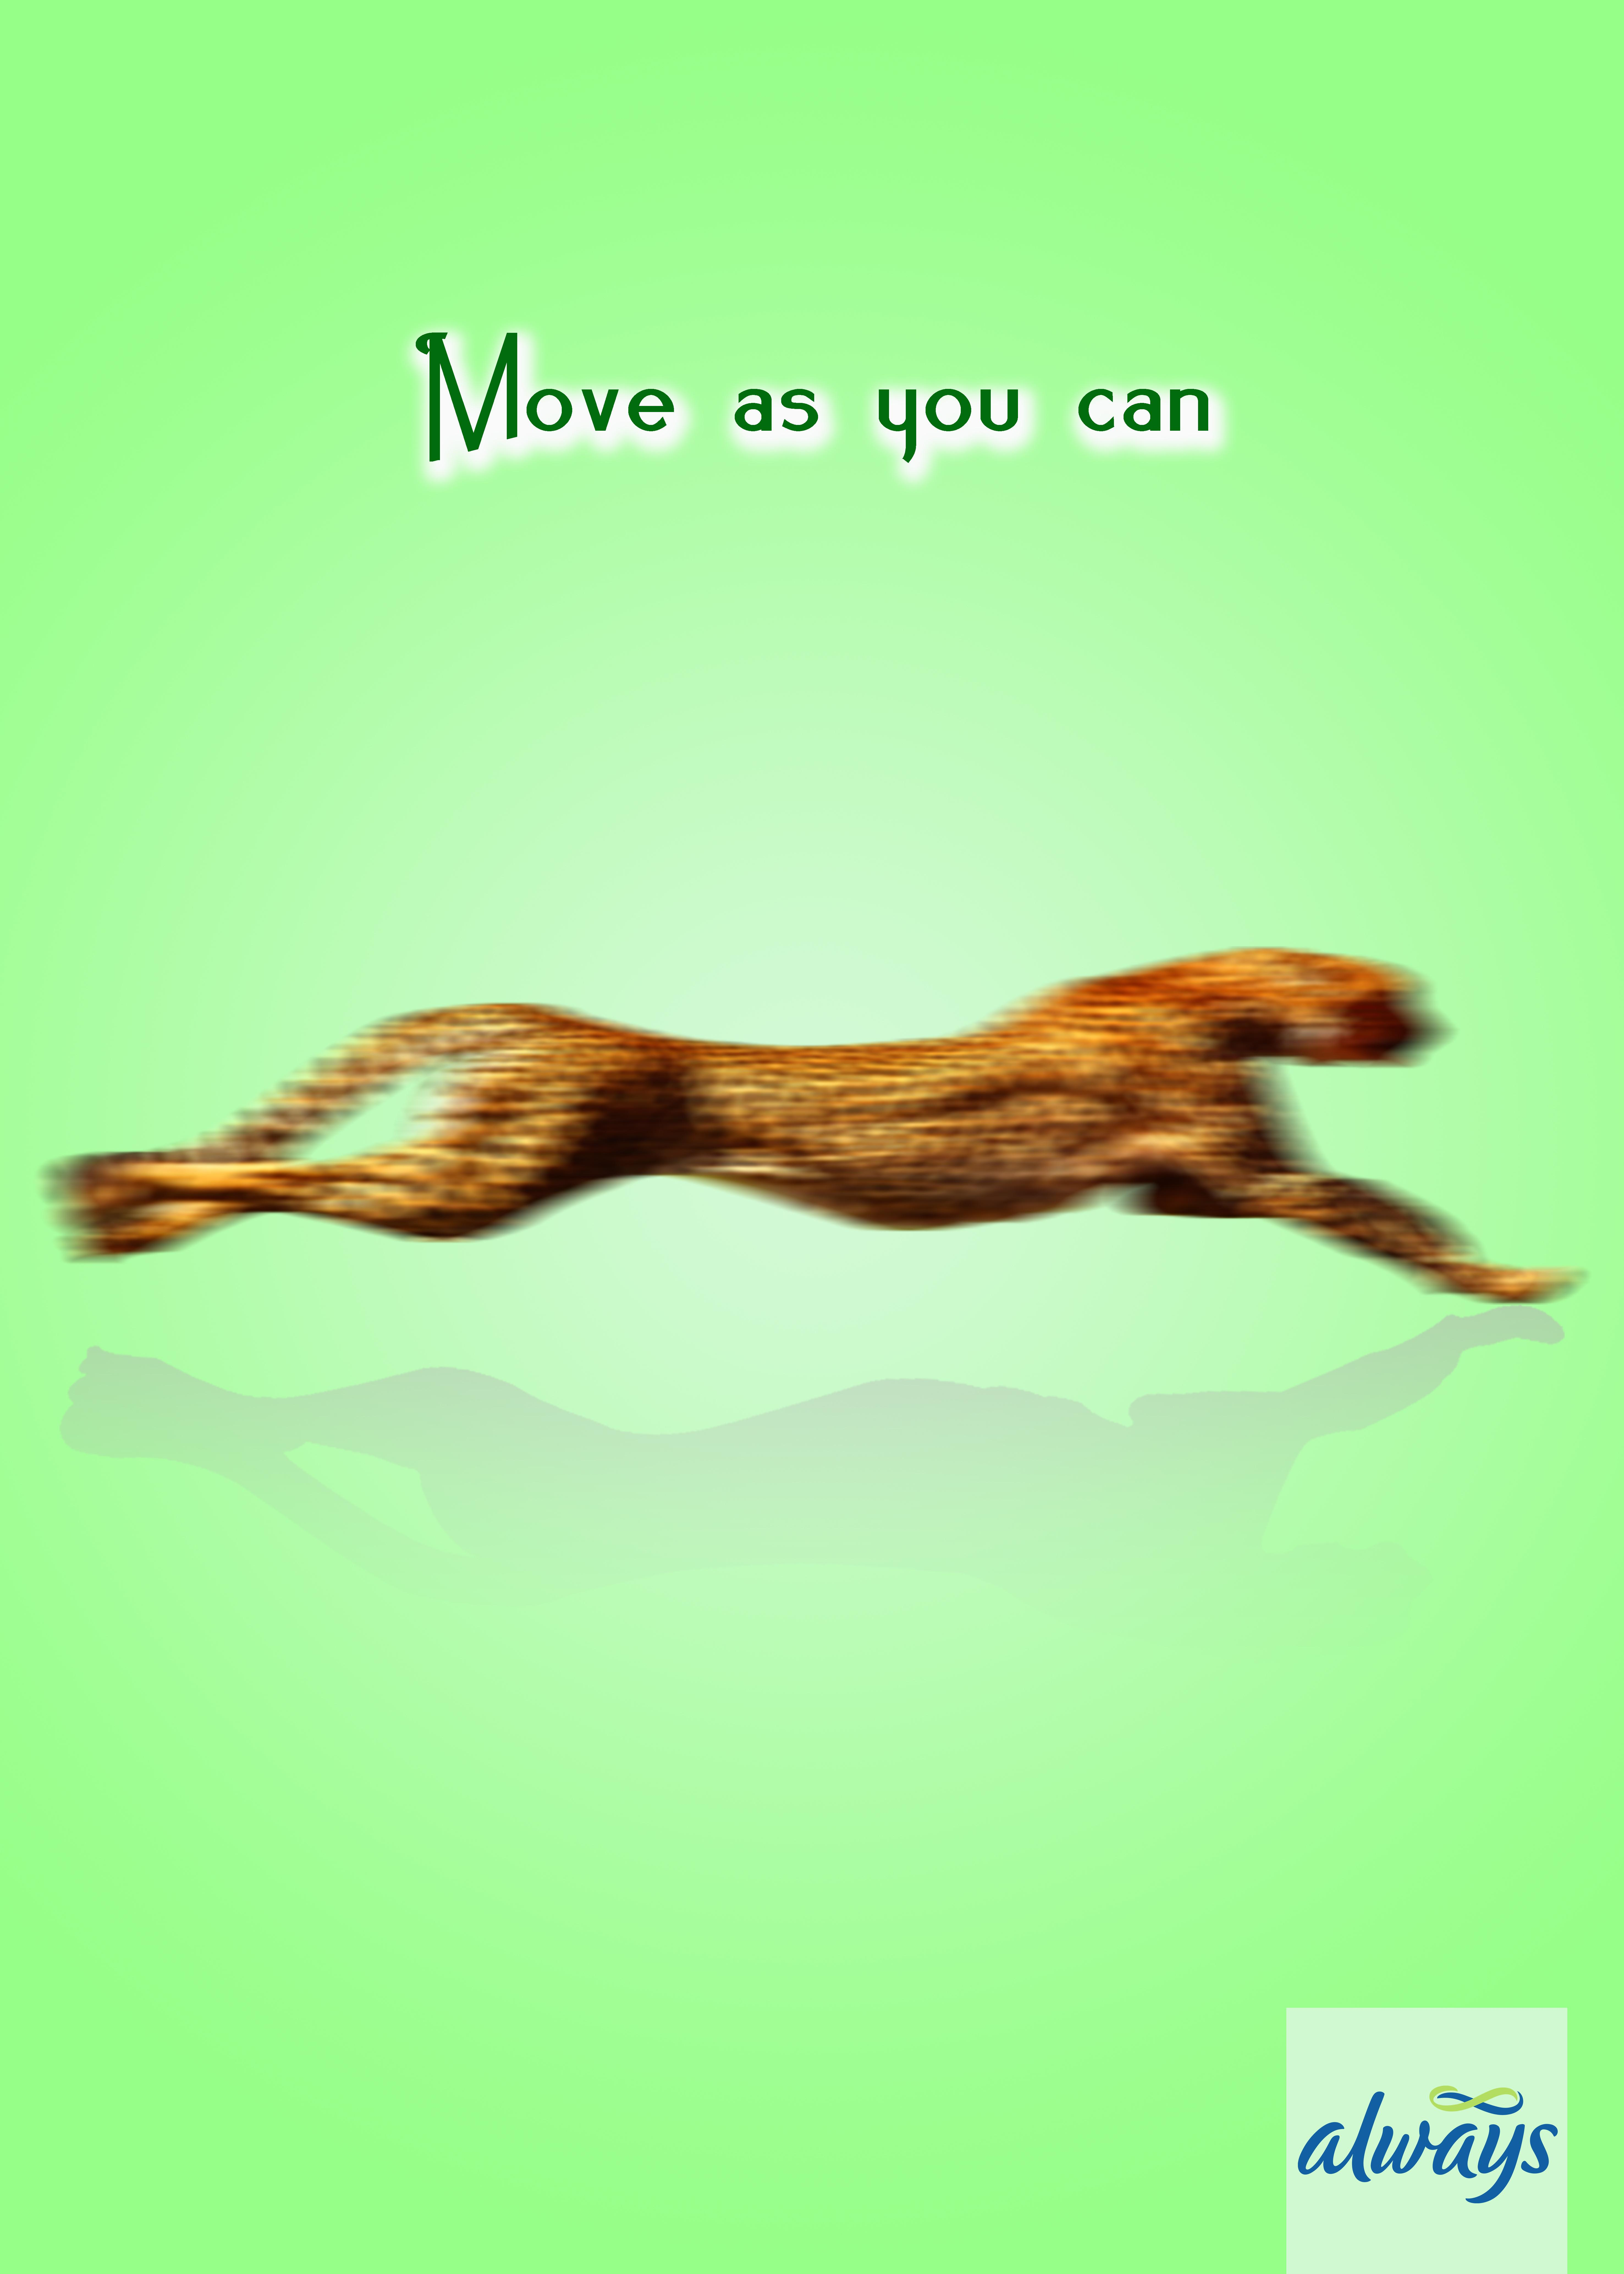 Always Print Ad - Move as You Can, 2